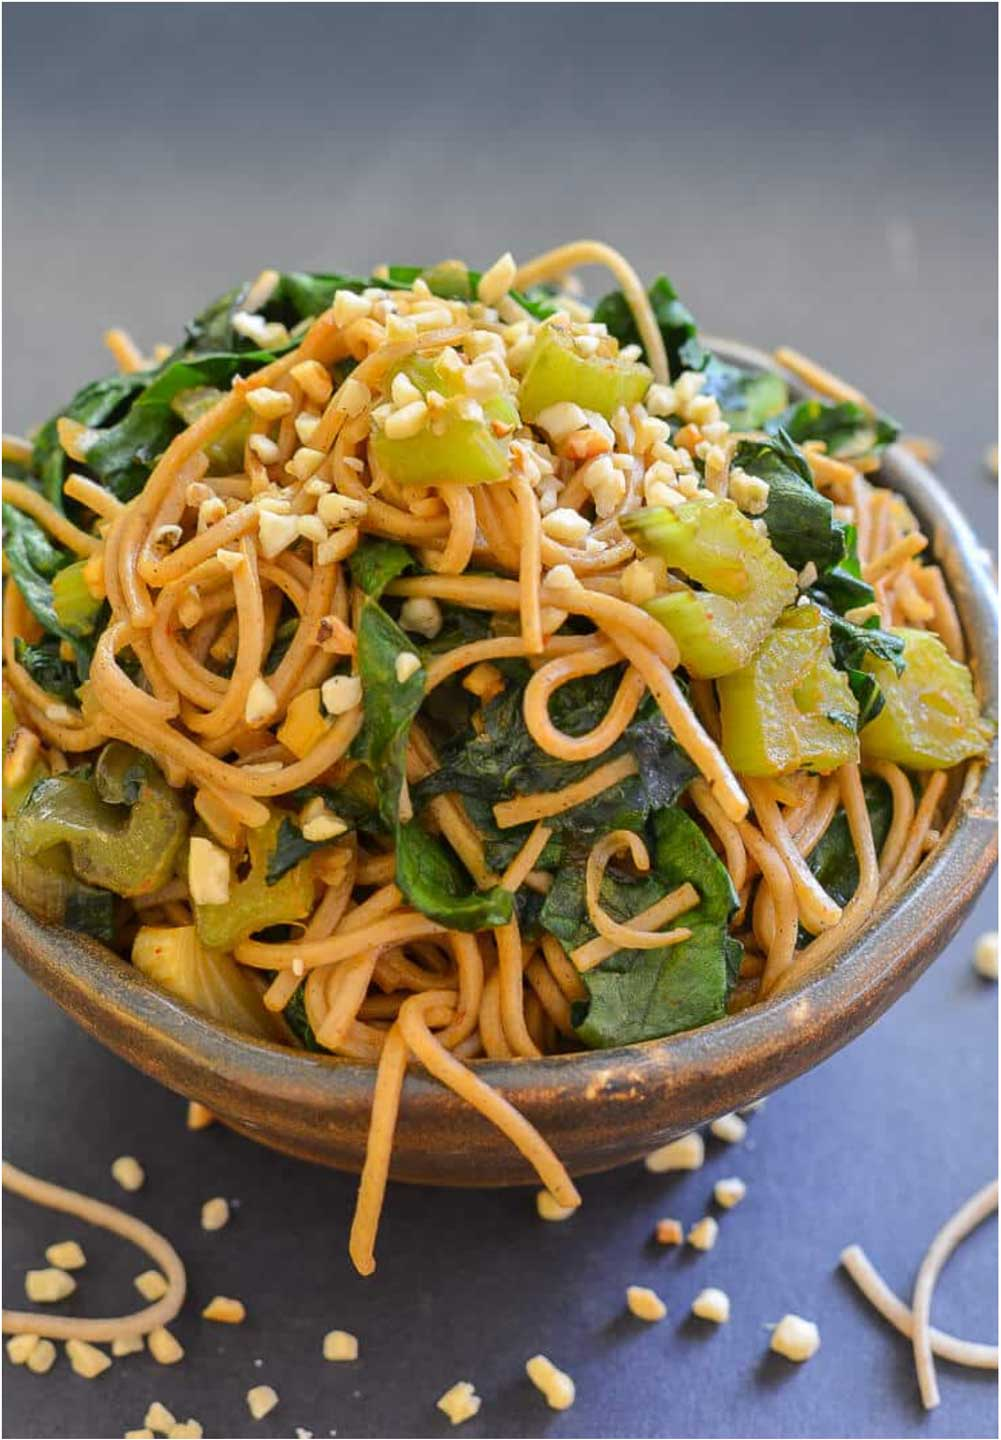 This Spicy Swiss Chard Soba Noodle Stir Fry uses the Swiss chard stems that are typically thrown away. A great way to eat ALL your veggies – stems and all!